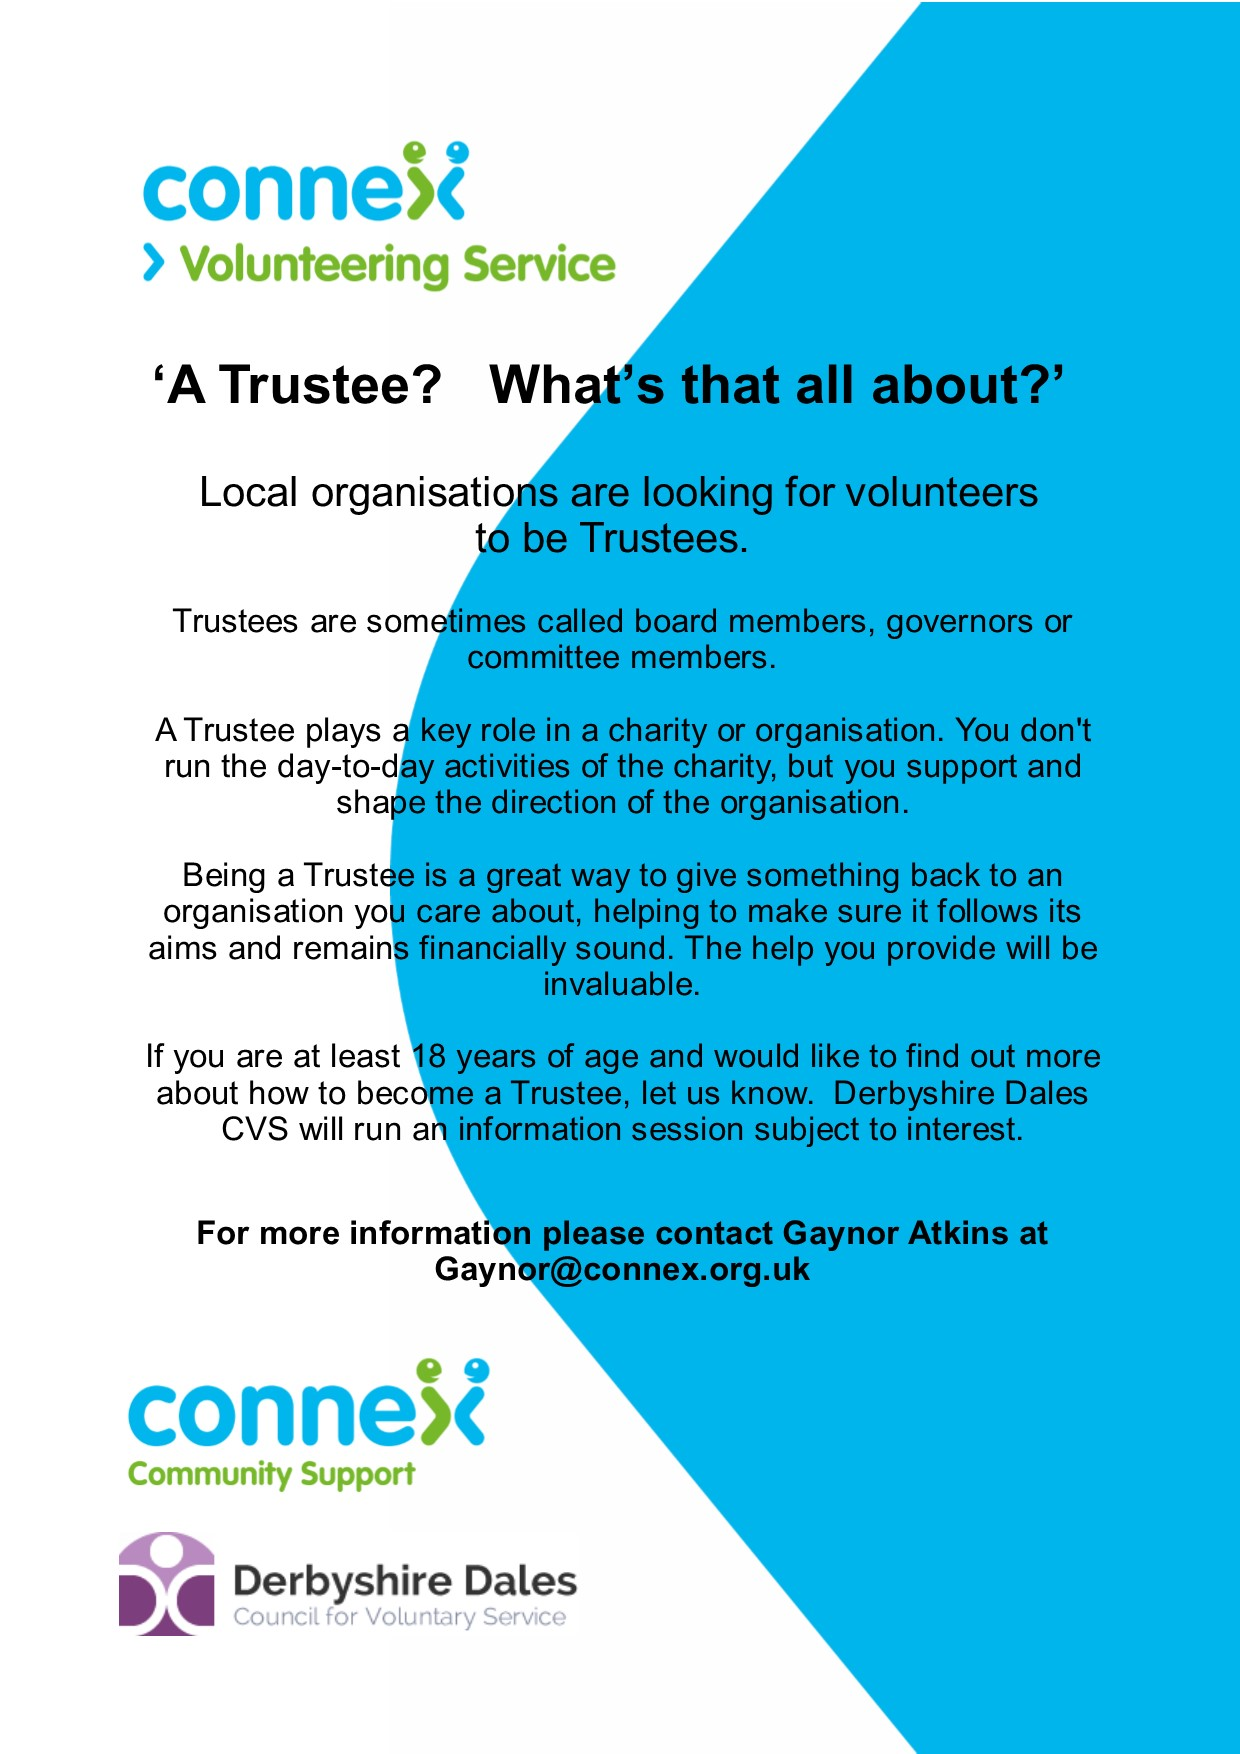 Poster encouraging people to find out about becoming a Trustee